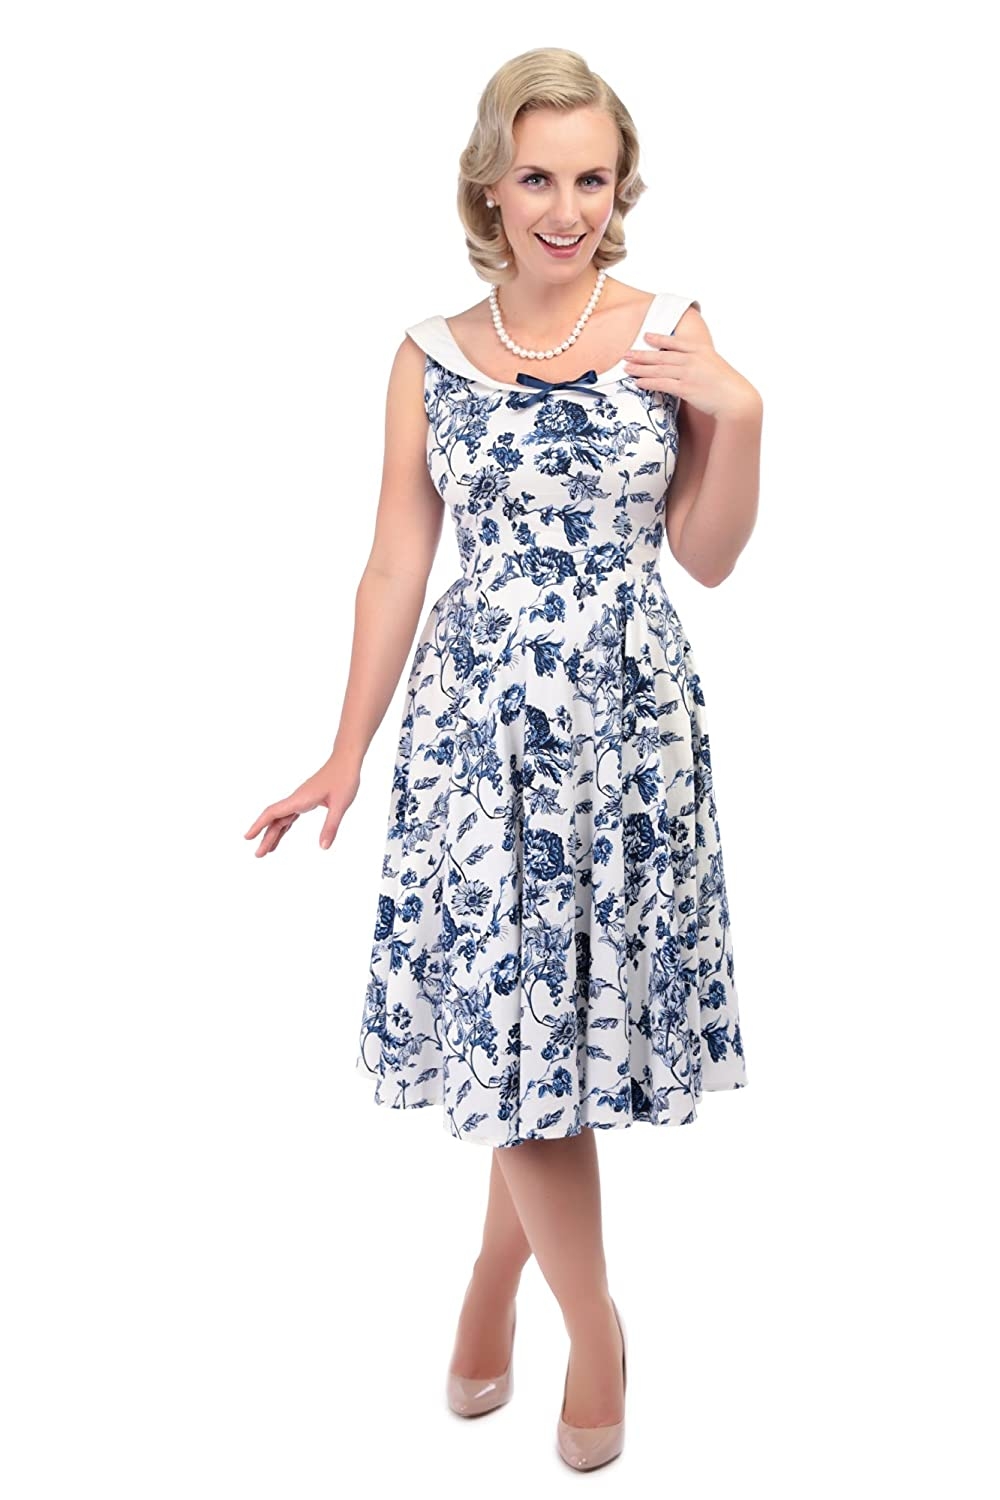 Collectif Vintage Women's Maddison Flared White & Blue Toile Print 1950's Dress